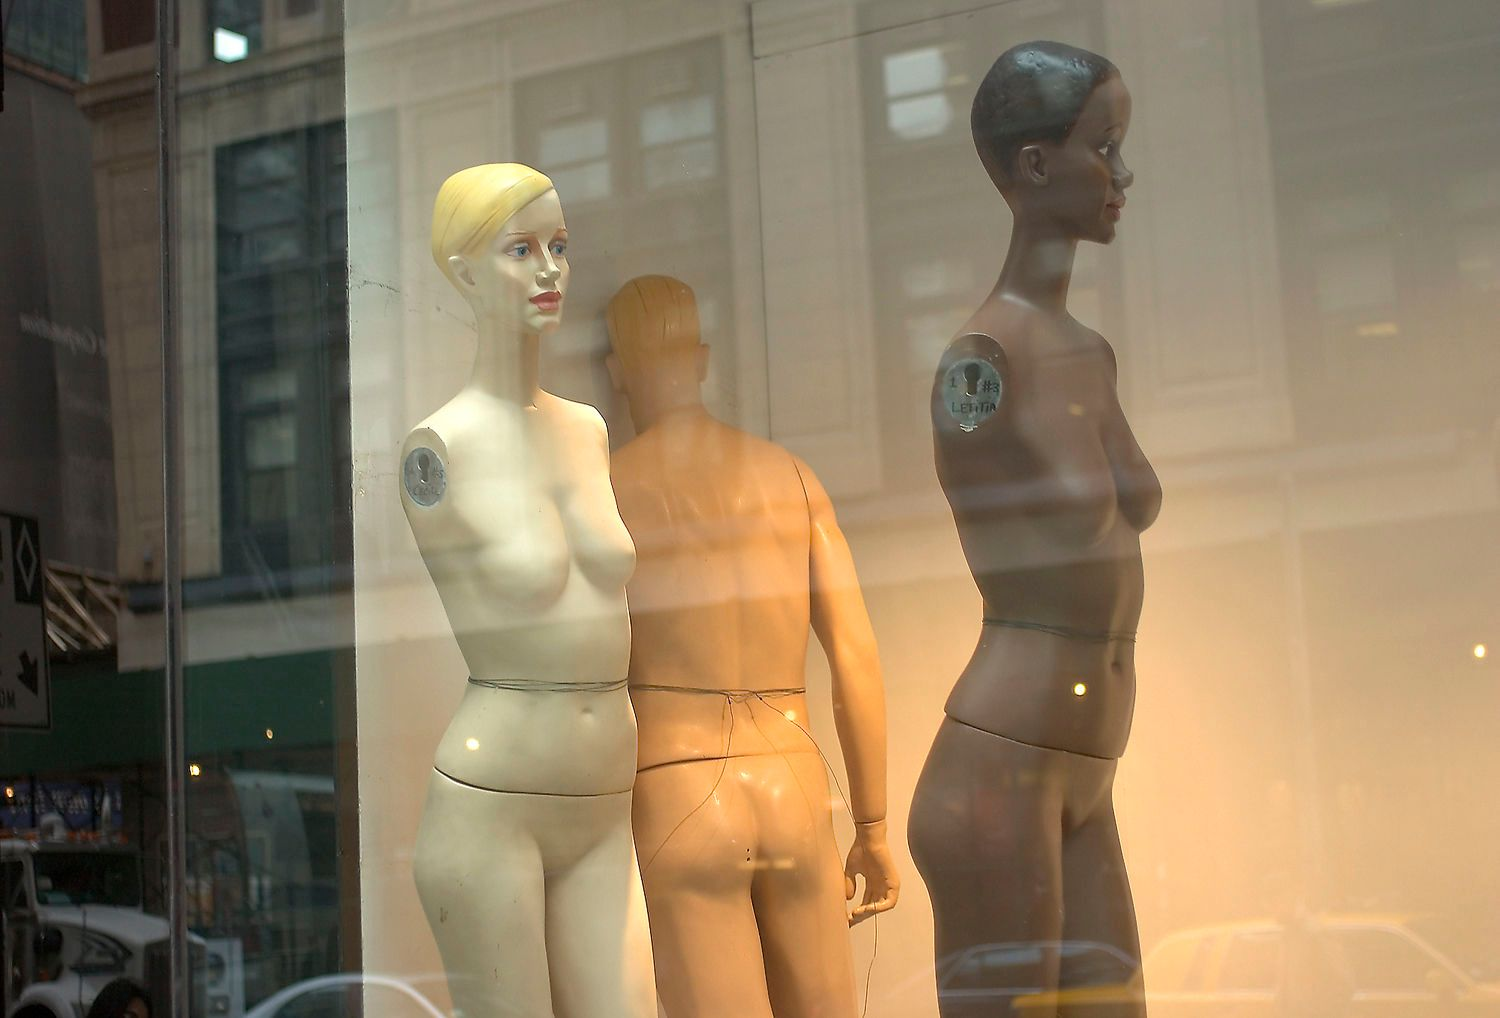 Mannequins in Store Window